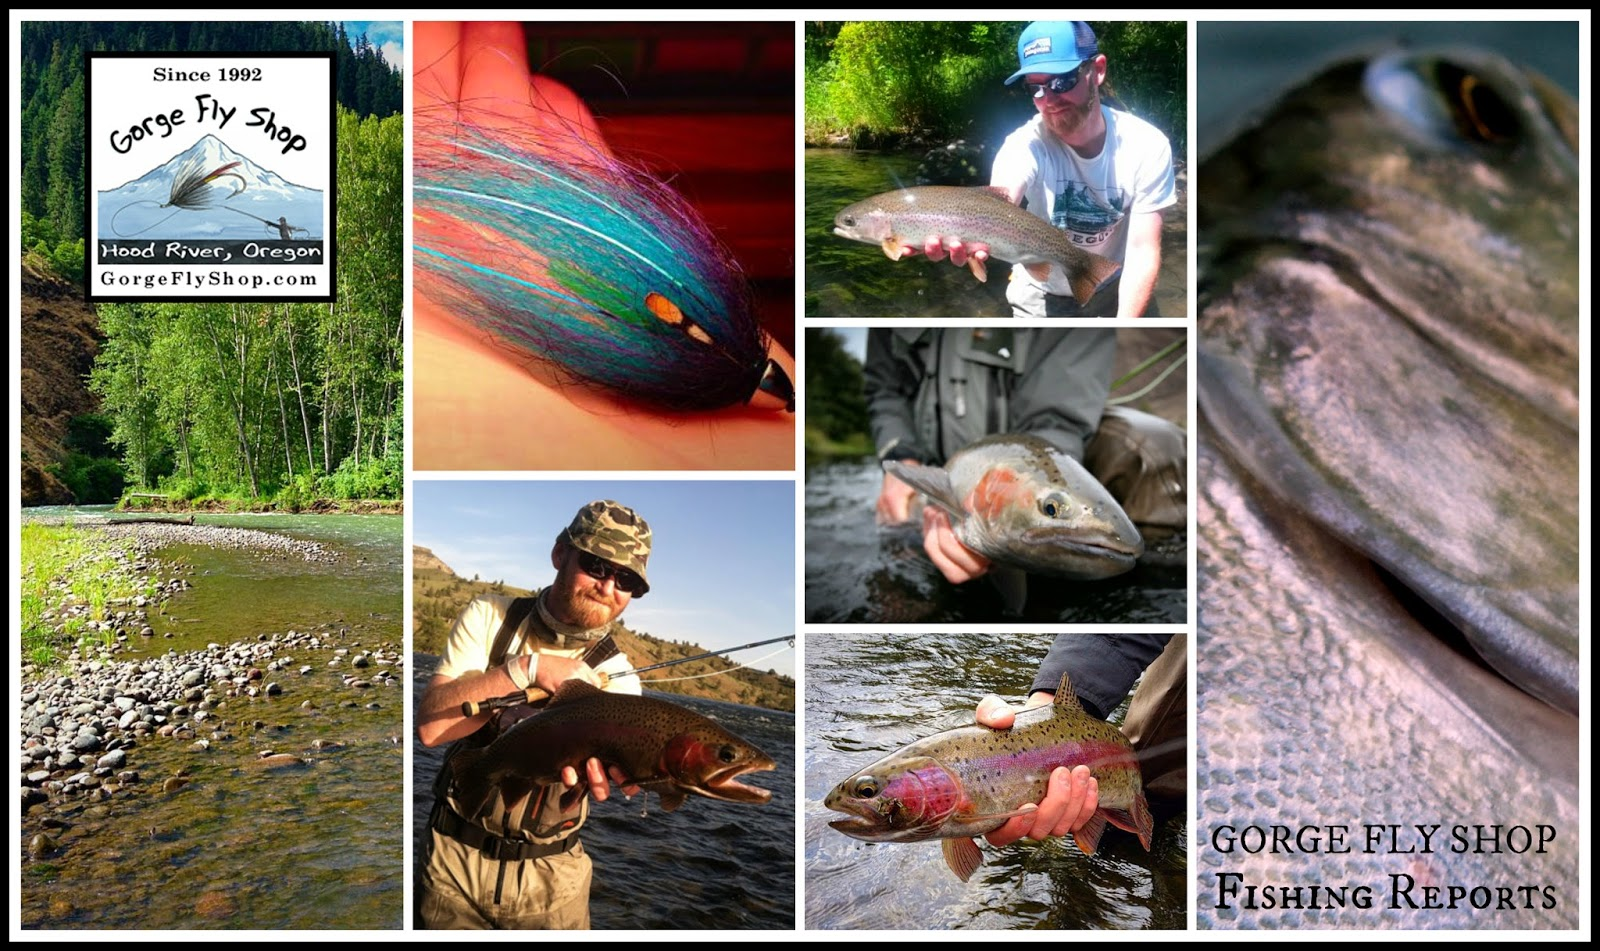 Gorge fly shop blog fishing report august 24th for Bucs fishing report